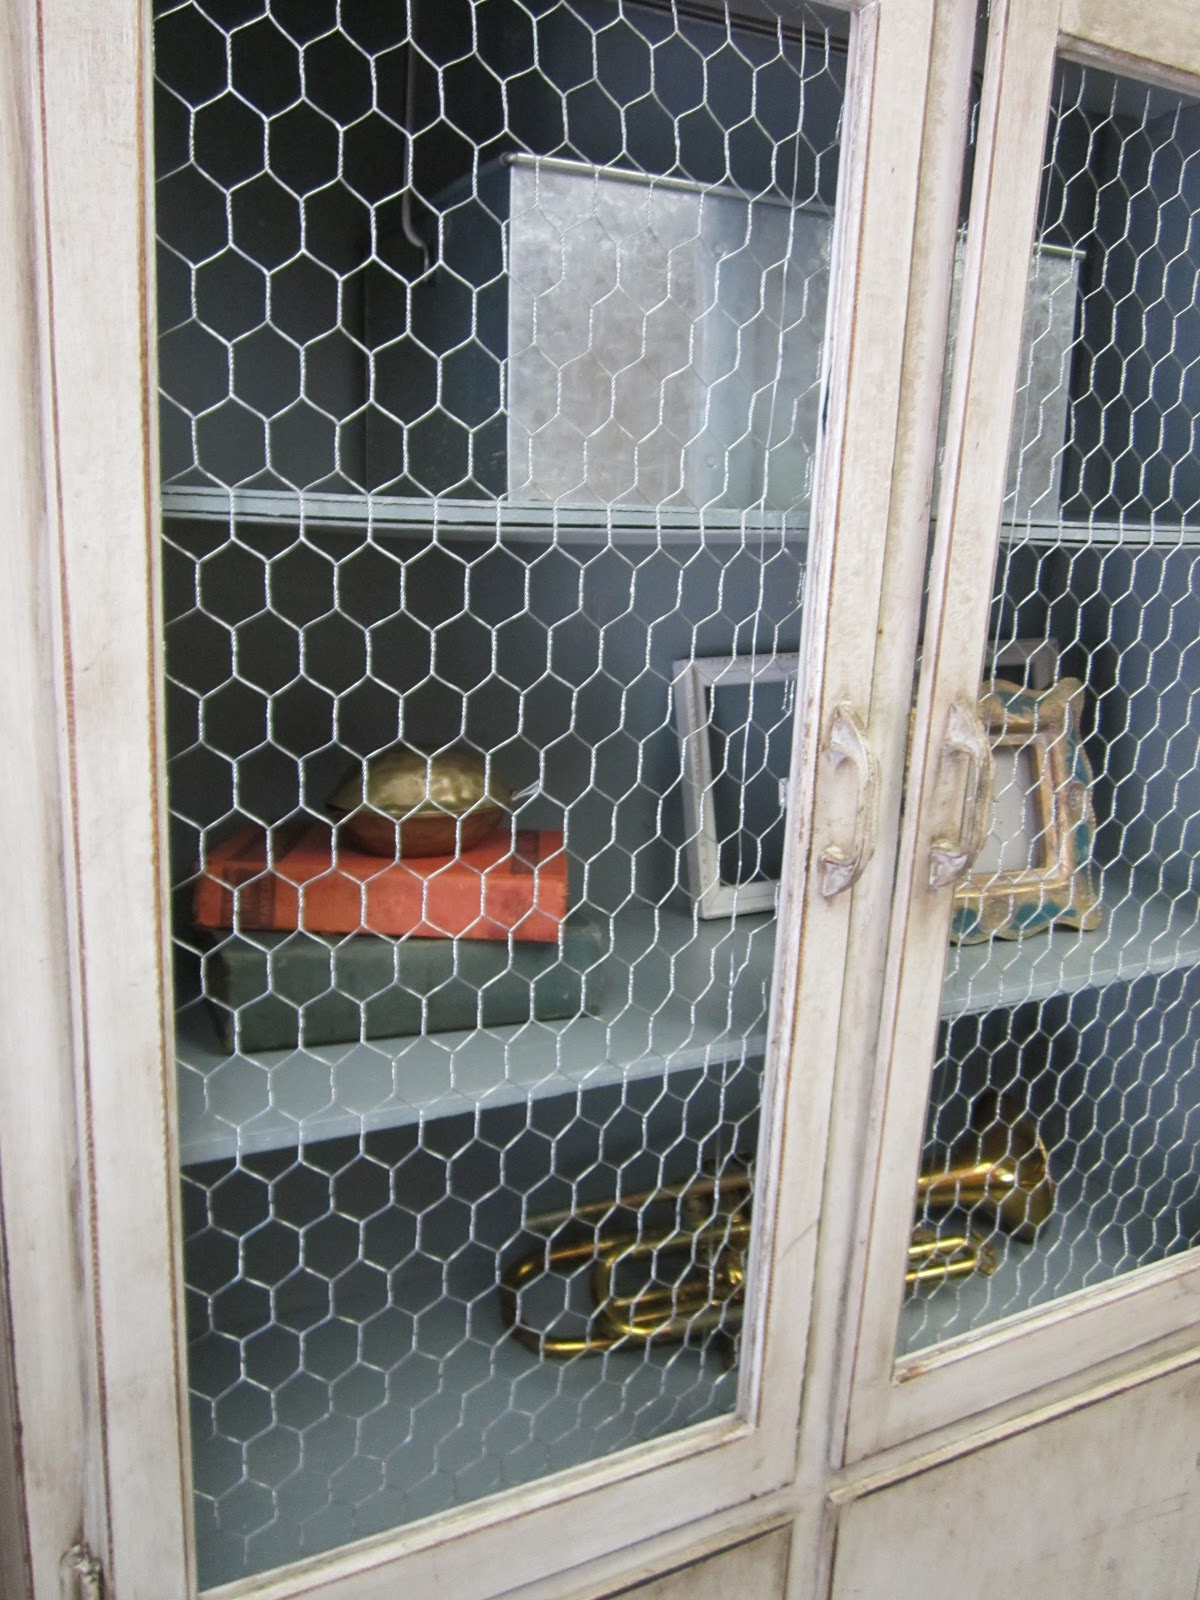 Genial Chicken Wire Cabinet